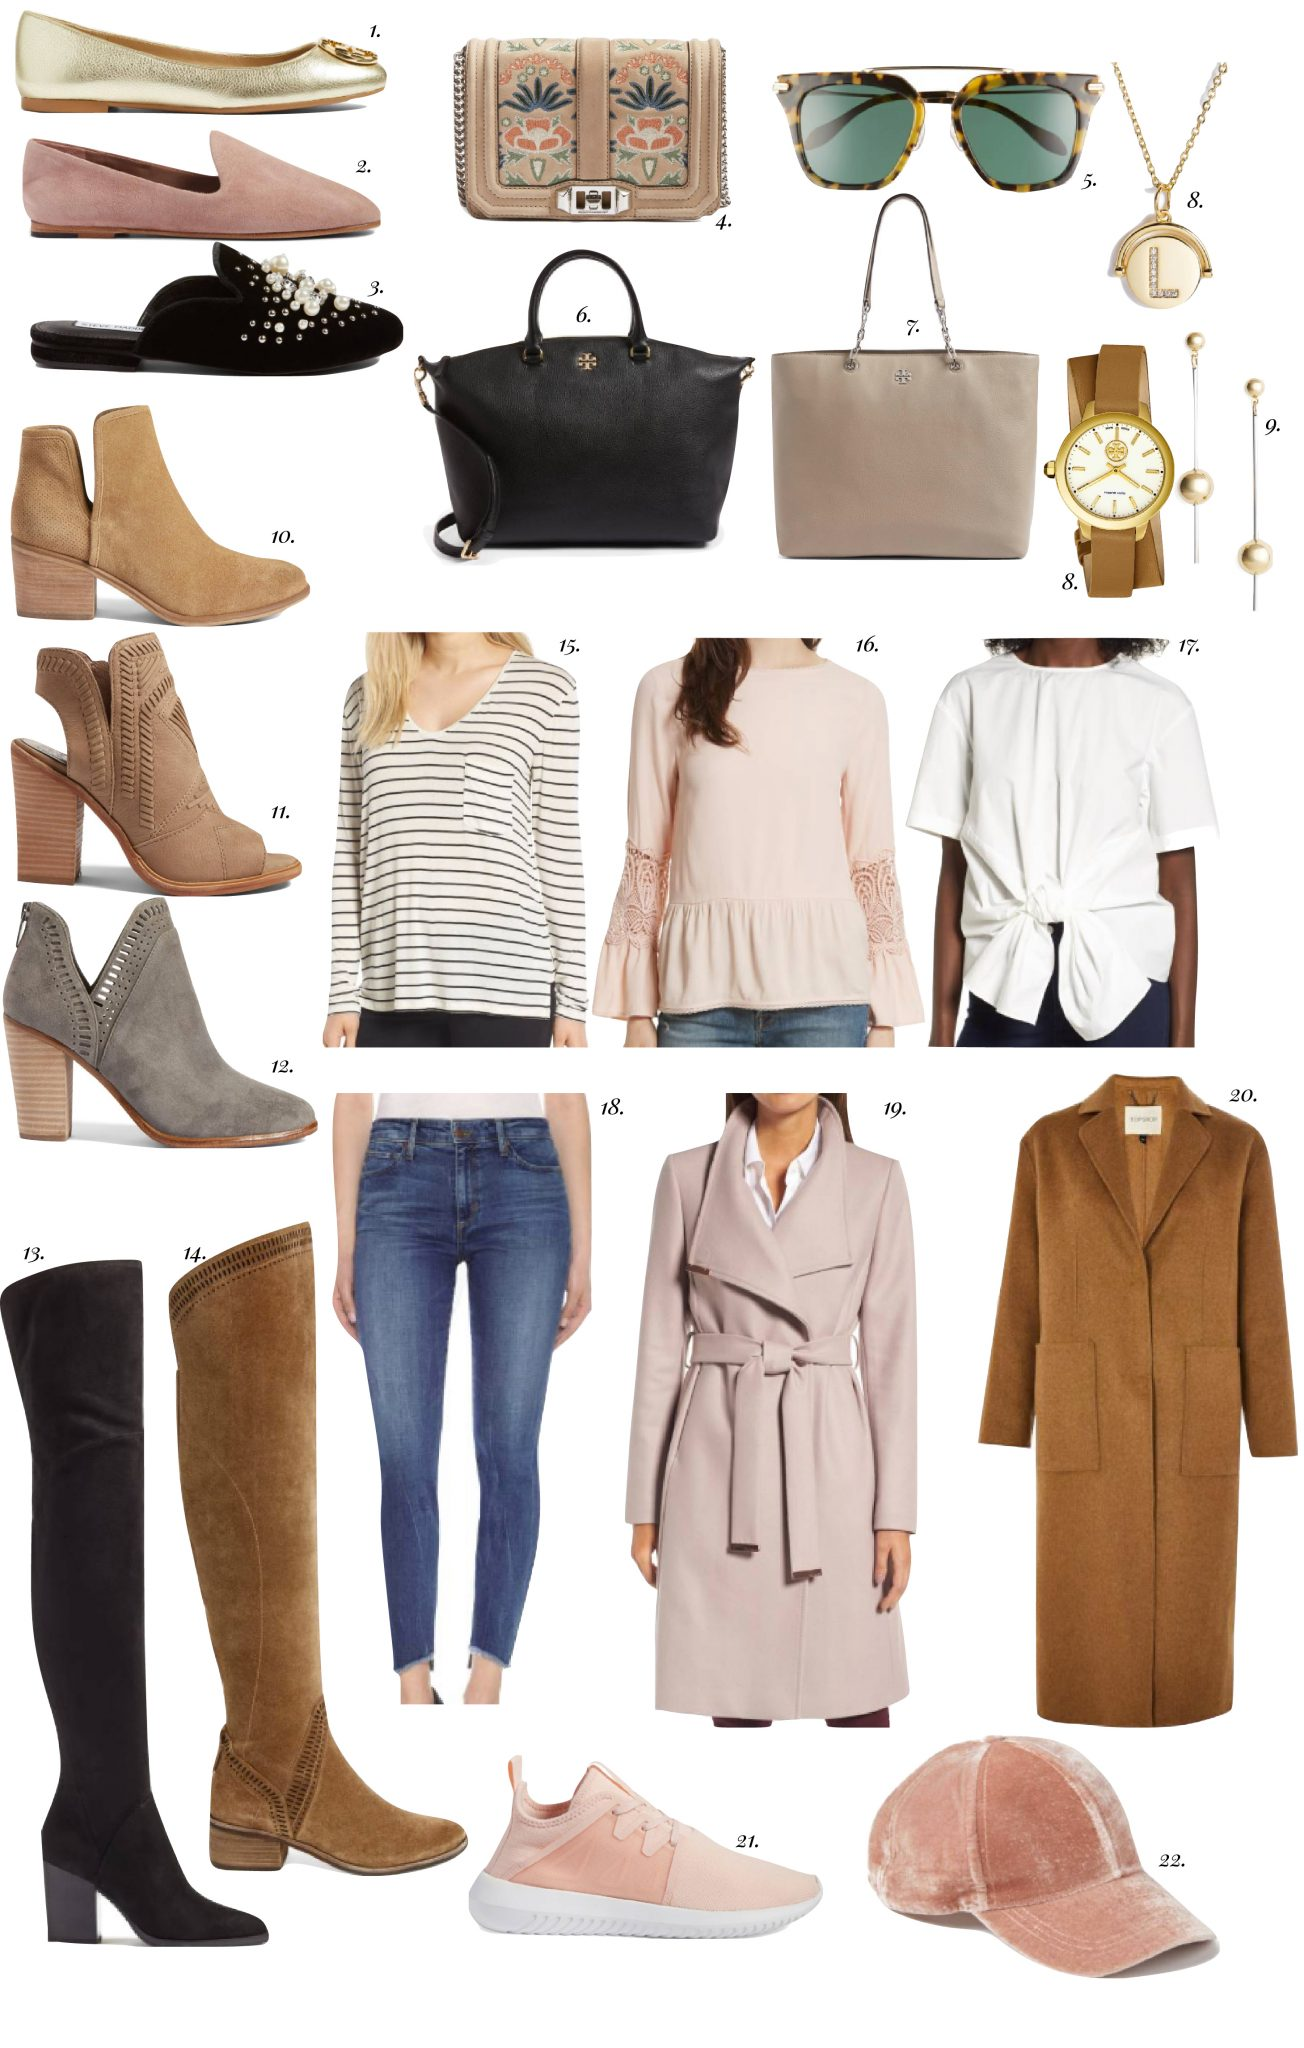 b509901d5e2 THE BEST OF THE NORDSTROM ANNIVERSARY SALE 2017 - Elle Apparel by ...